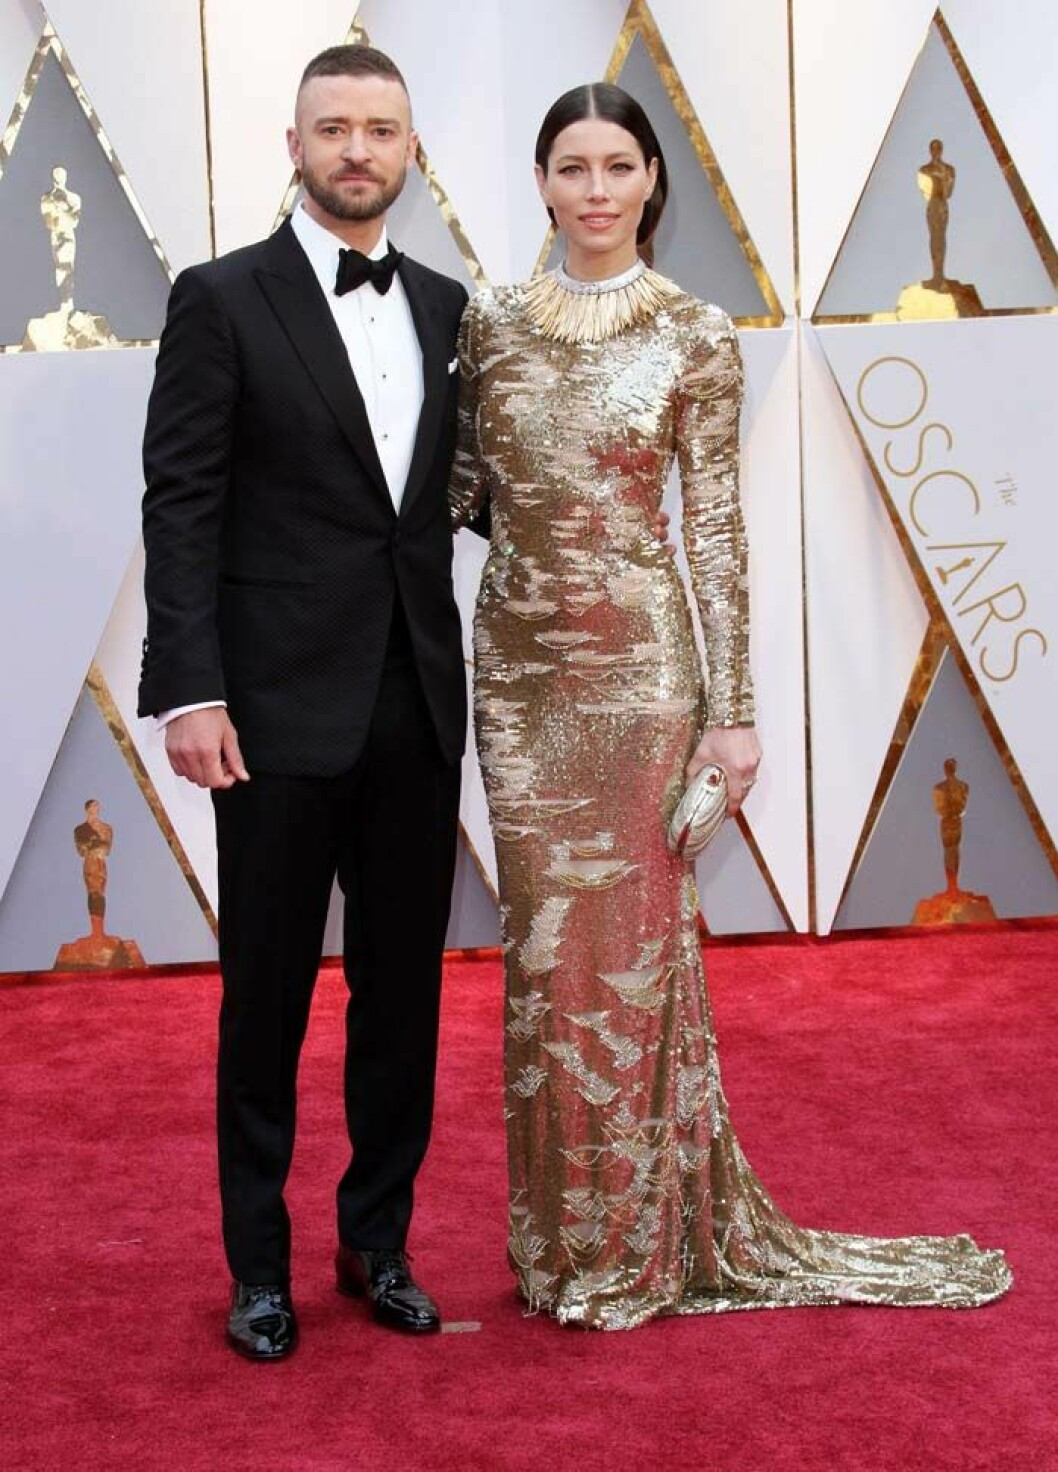 89th Annual Academy Awards (Oscars 2017) - Arrivals held at the Dolby Theatre at the Hollywood & Highland Center. Featuring: Jessica Biel, Justin Timberlake Where: Los Angeles, California, United States When: 26 Feb 2017 Credit: Adriana M. Barraza/WENN.com